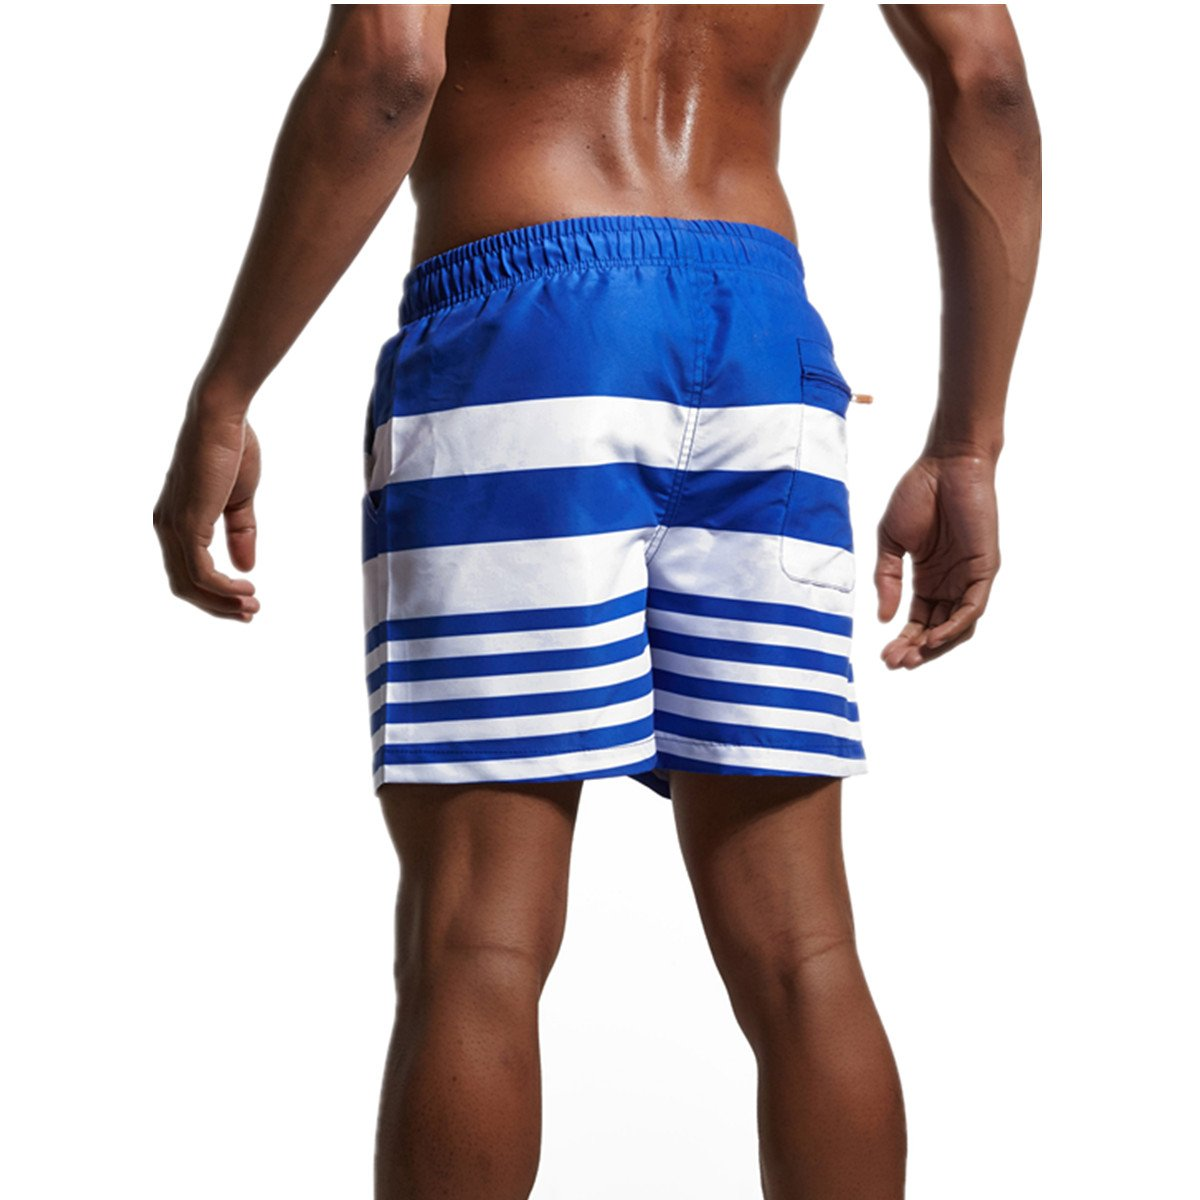 CHENHENG Mens Swim Trunks Swim Shorts Quick Dry Beach Shorts Broad Shorts with Pockets for Surfing Swimming (L_ Asia XXL -Waist:33\